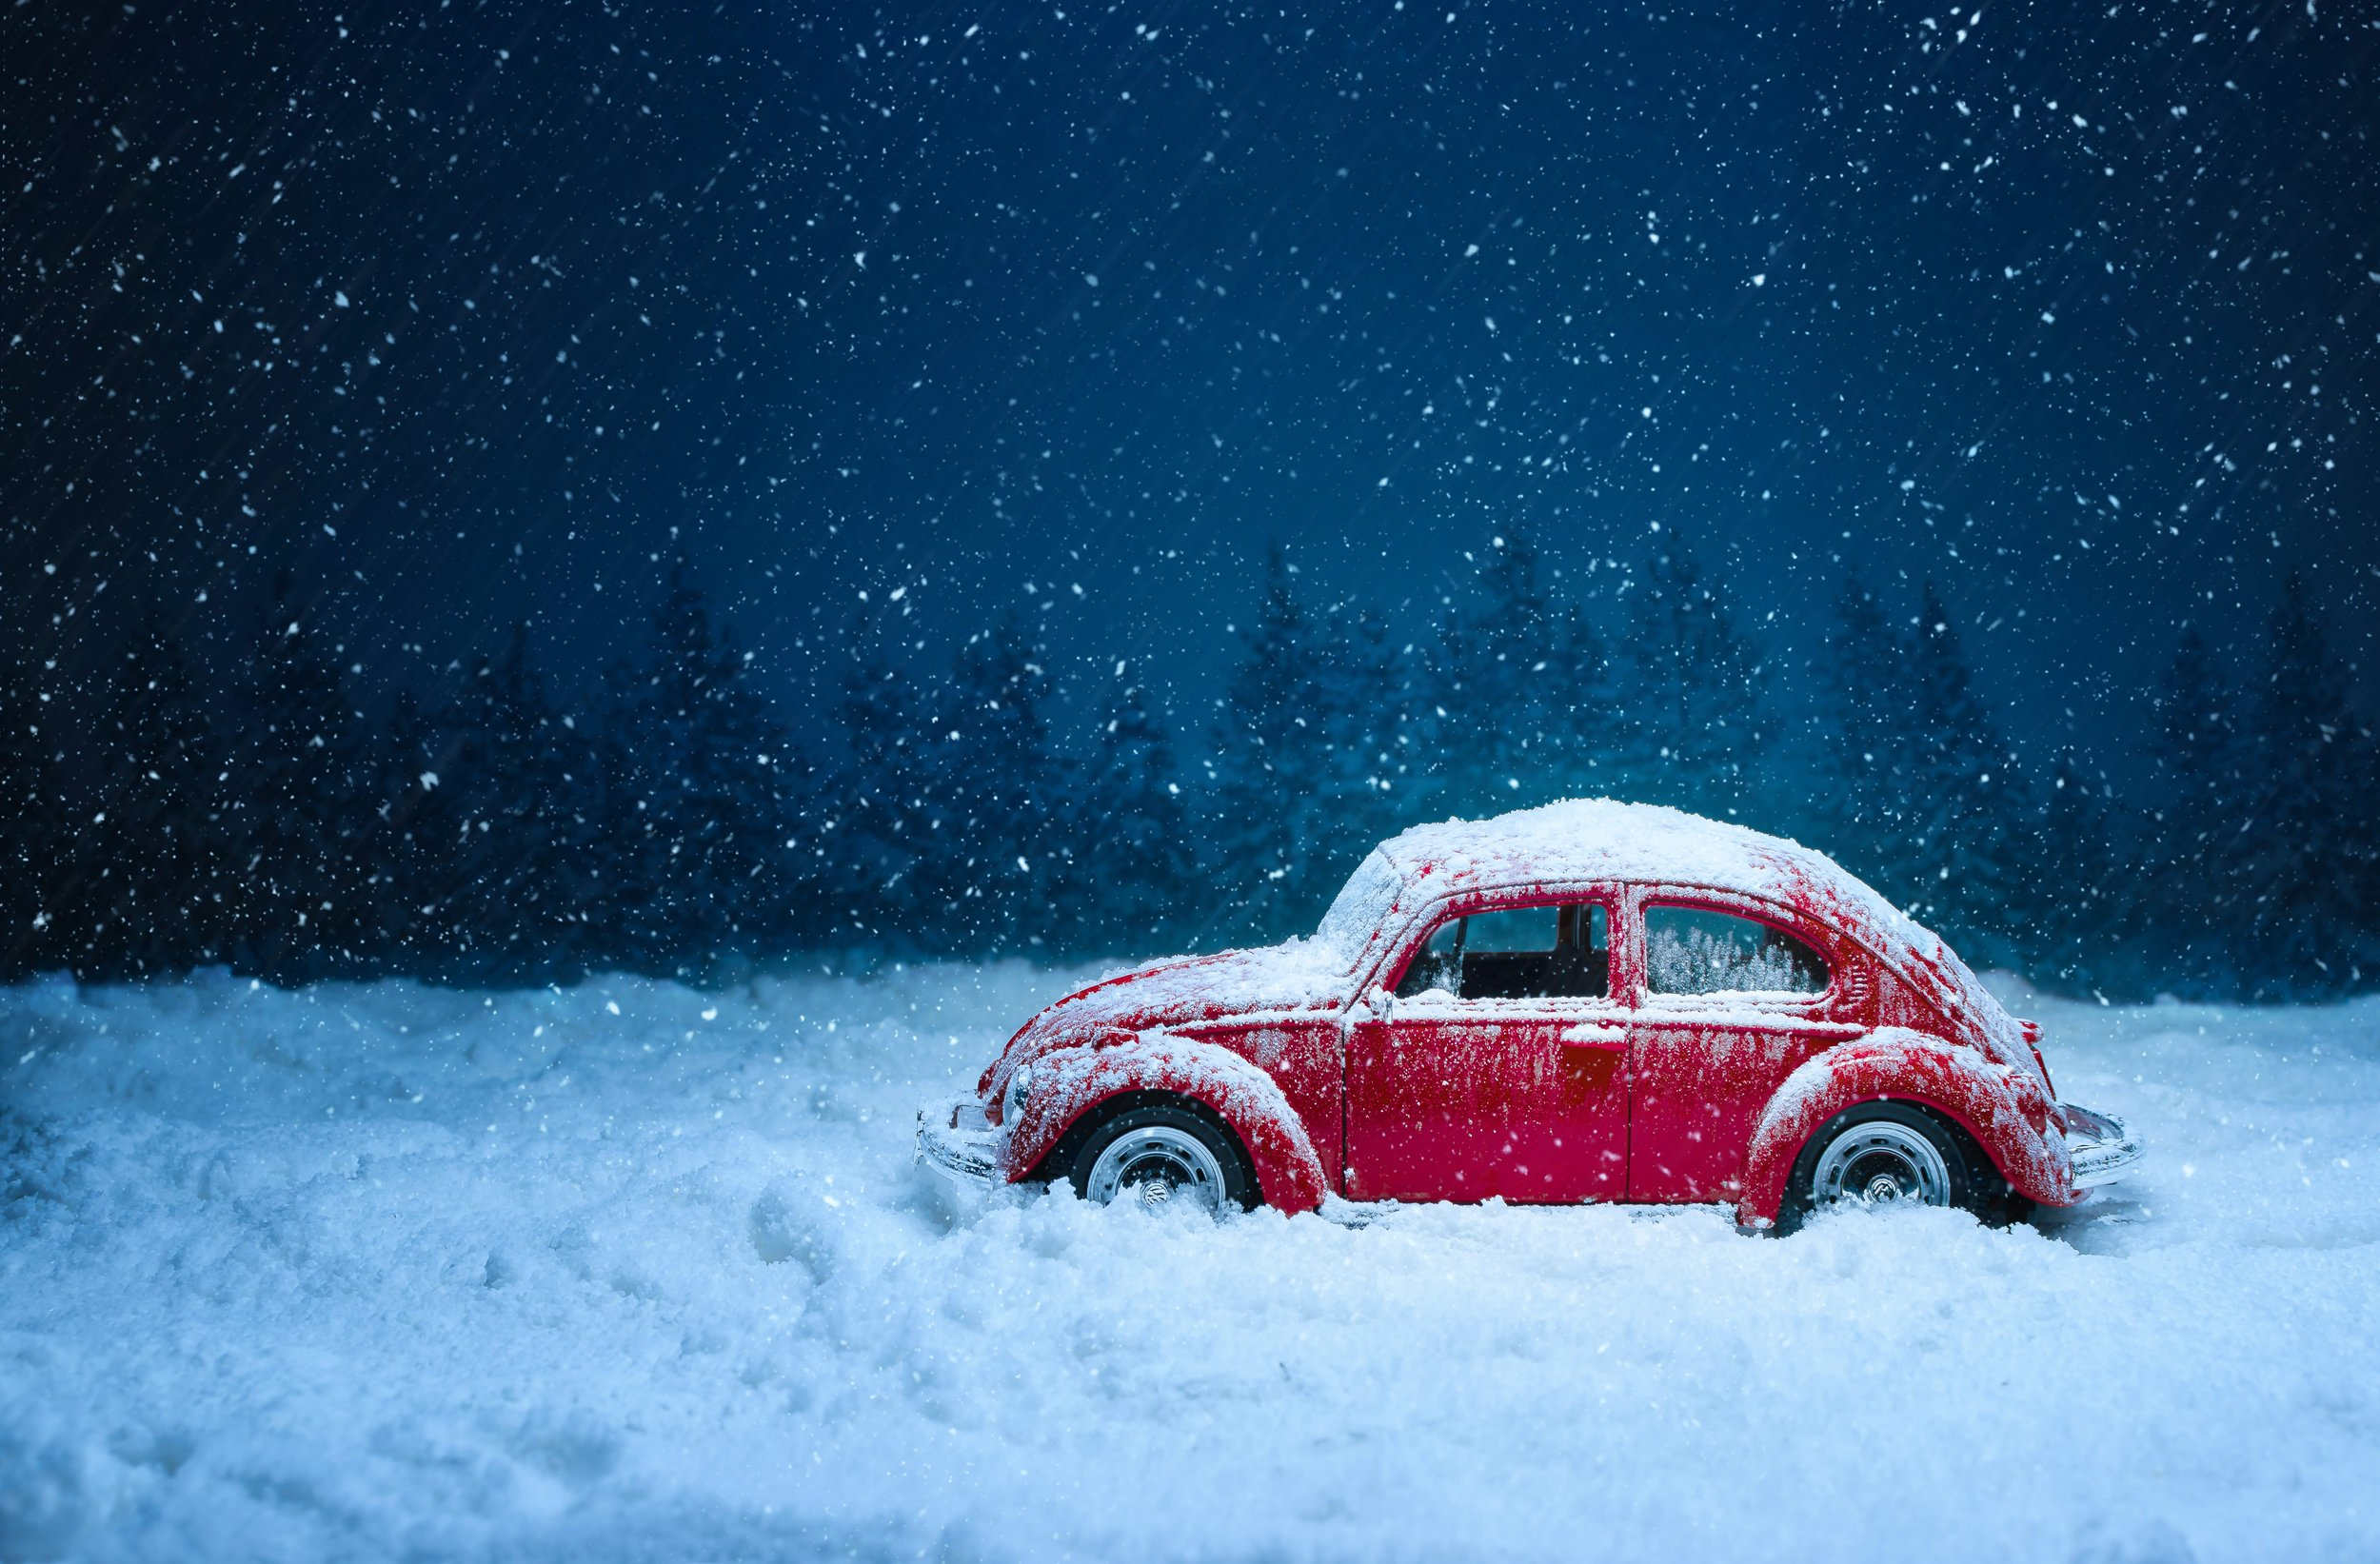 Whatever you drive, make sure your vehicle is ready to travel this winter. ( Pixabay.com photos )